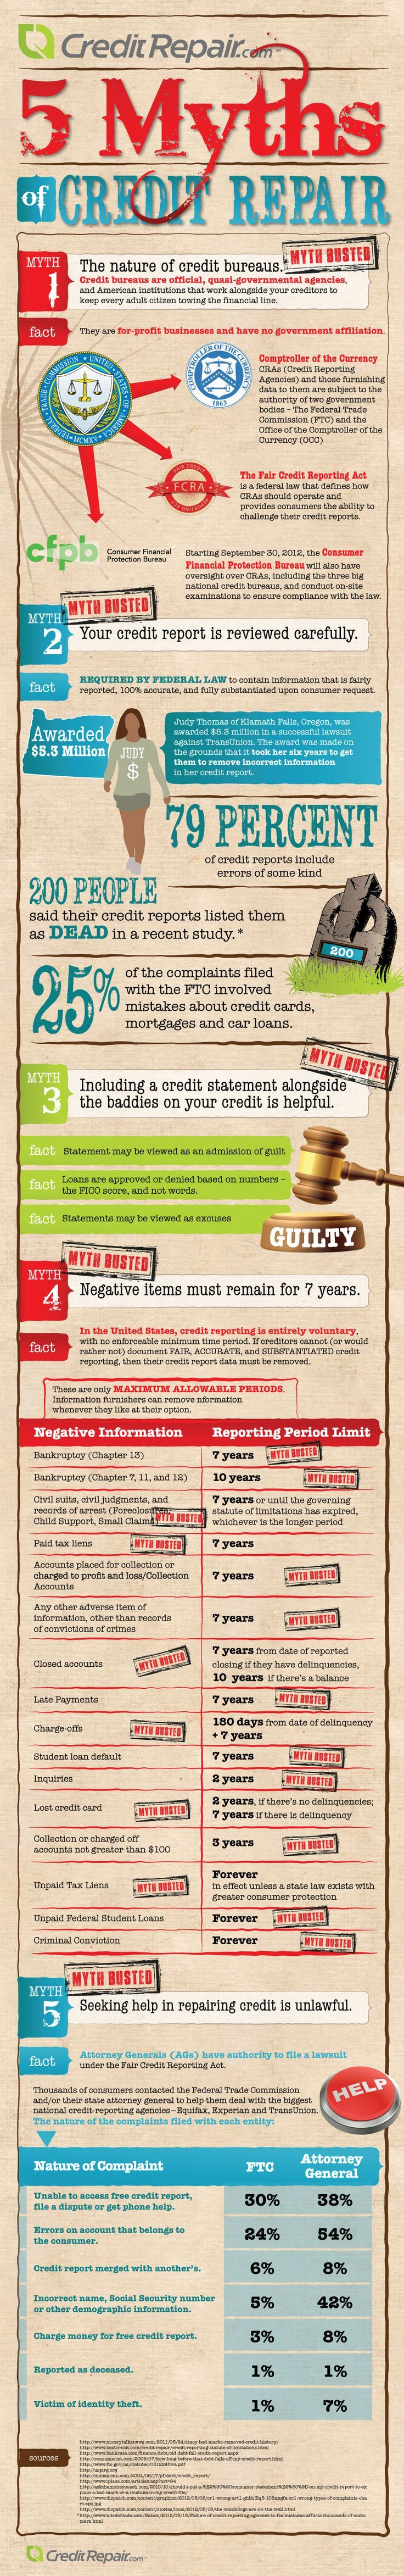 5 Myths of #Credit Repair - BUSTED! Credit, Credit Scores, Credit Repair #credit #creditscore